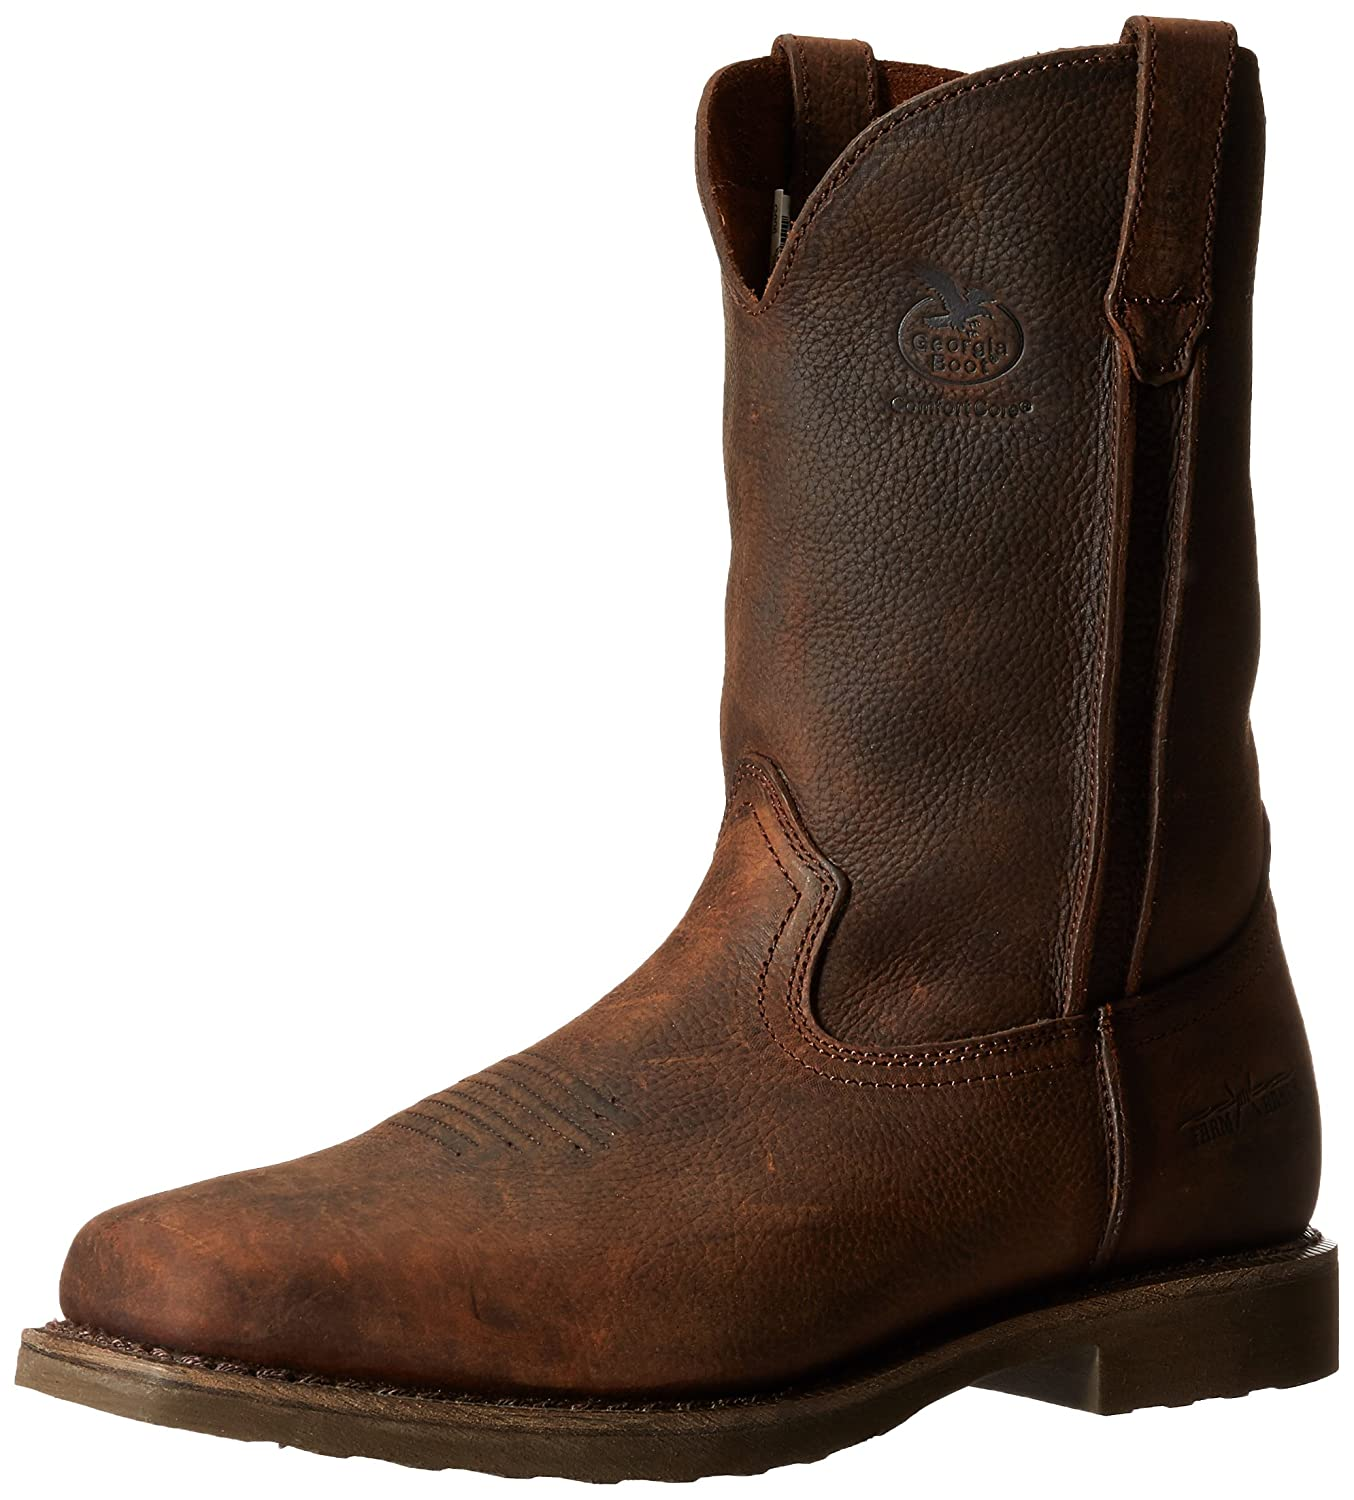 Georgia Boot メンズ Dog Wood 10.5 D(M) US 10.5 D(M) USDog Wood B00CQT9MK2